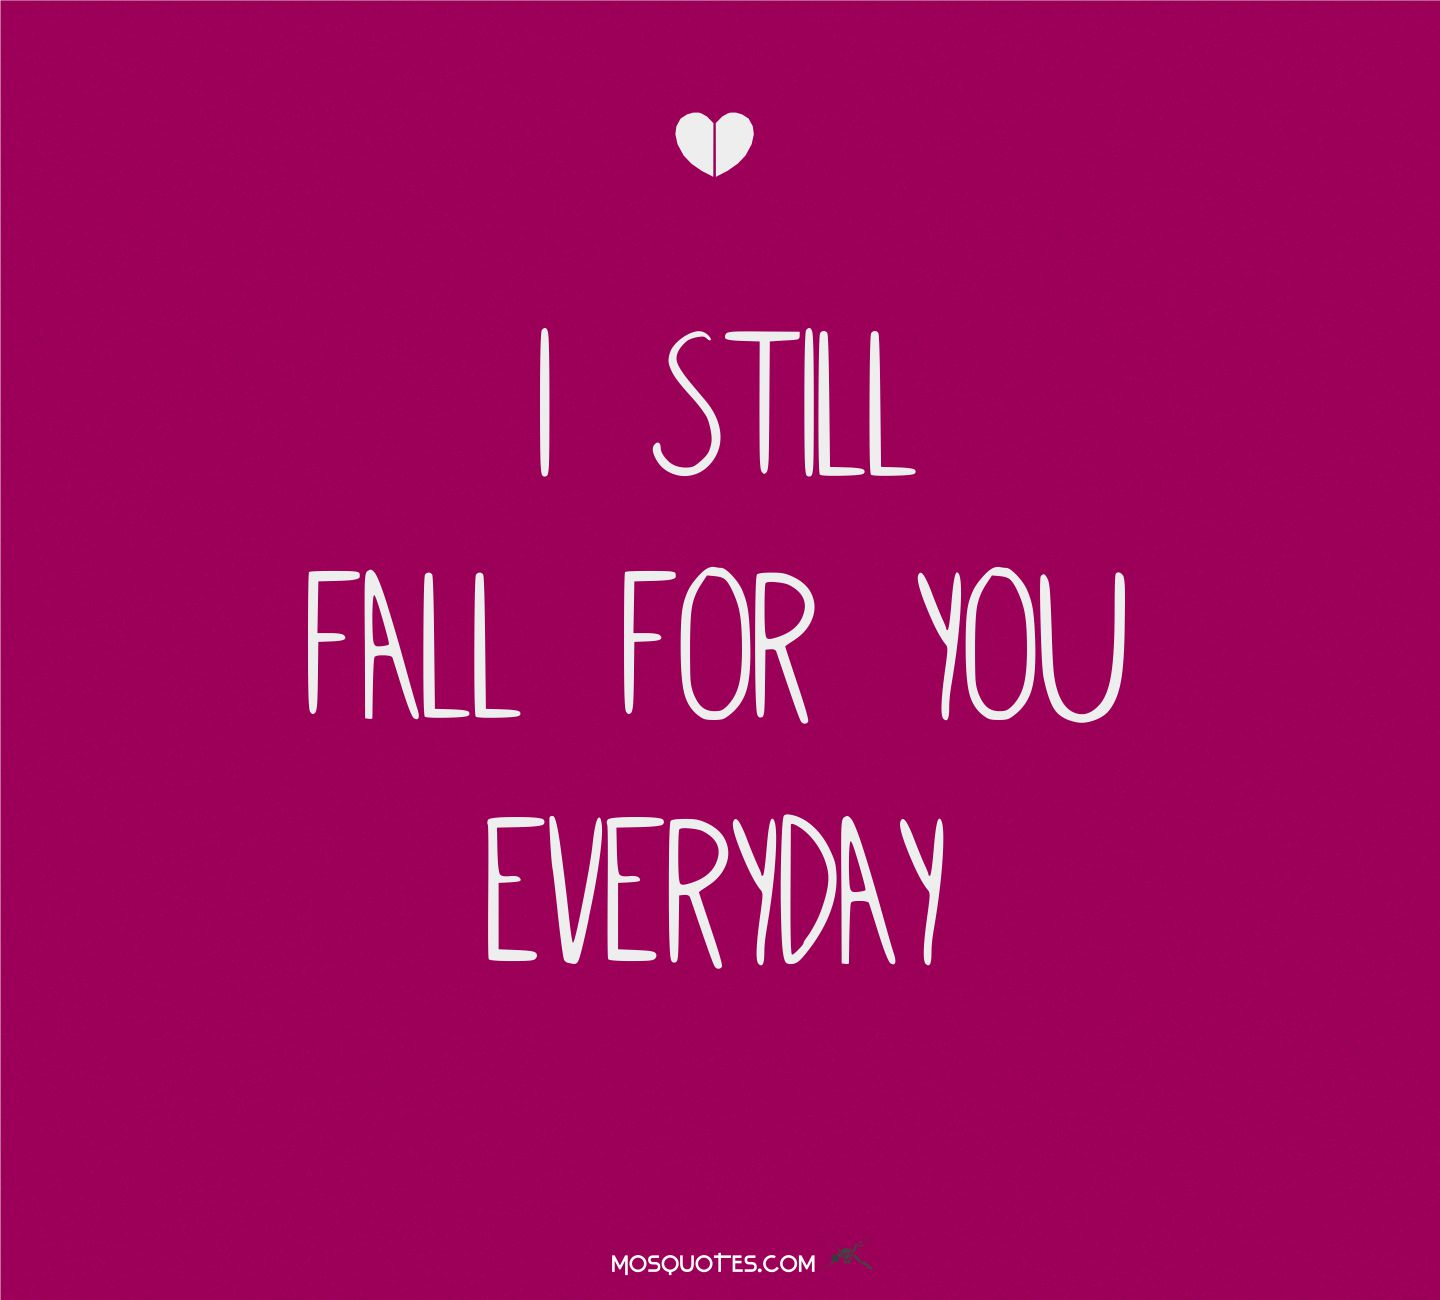 Everyday Love Quotes: Everyday I Fall More In Love With You Quotes. QuotesGram